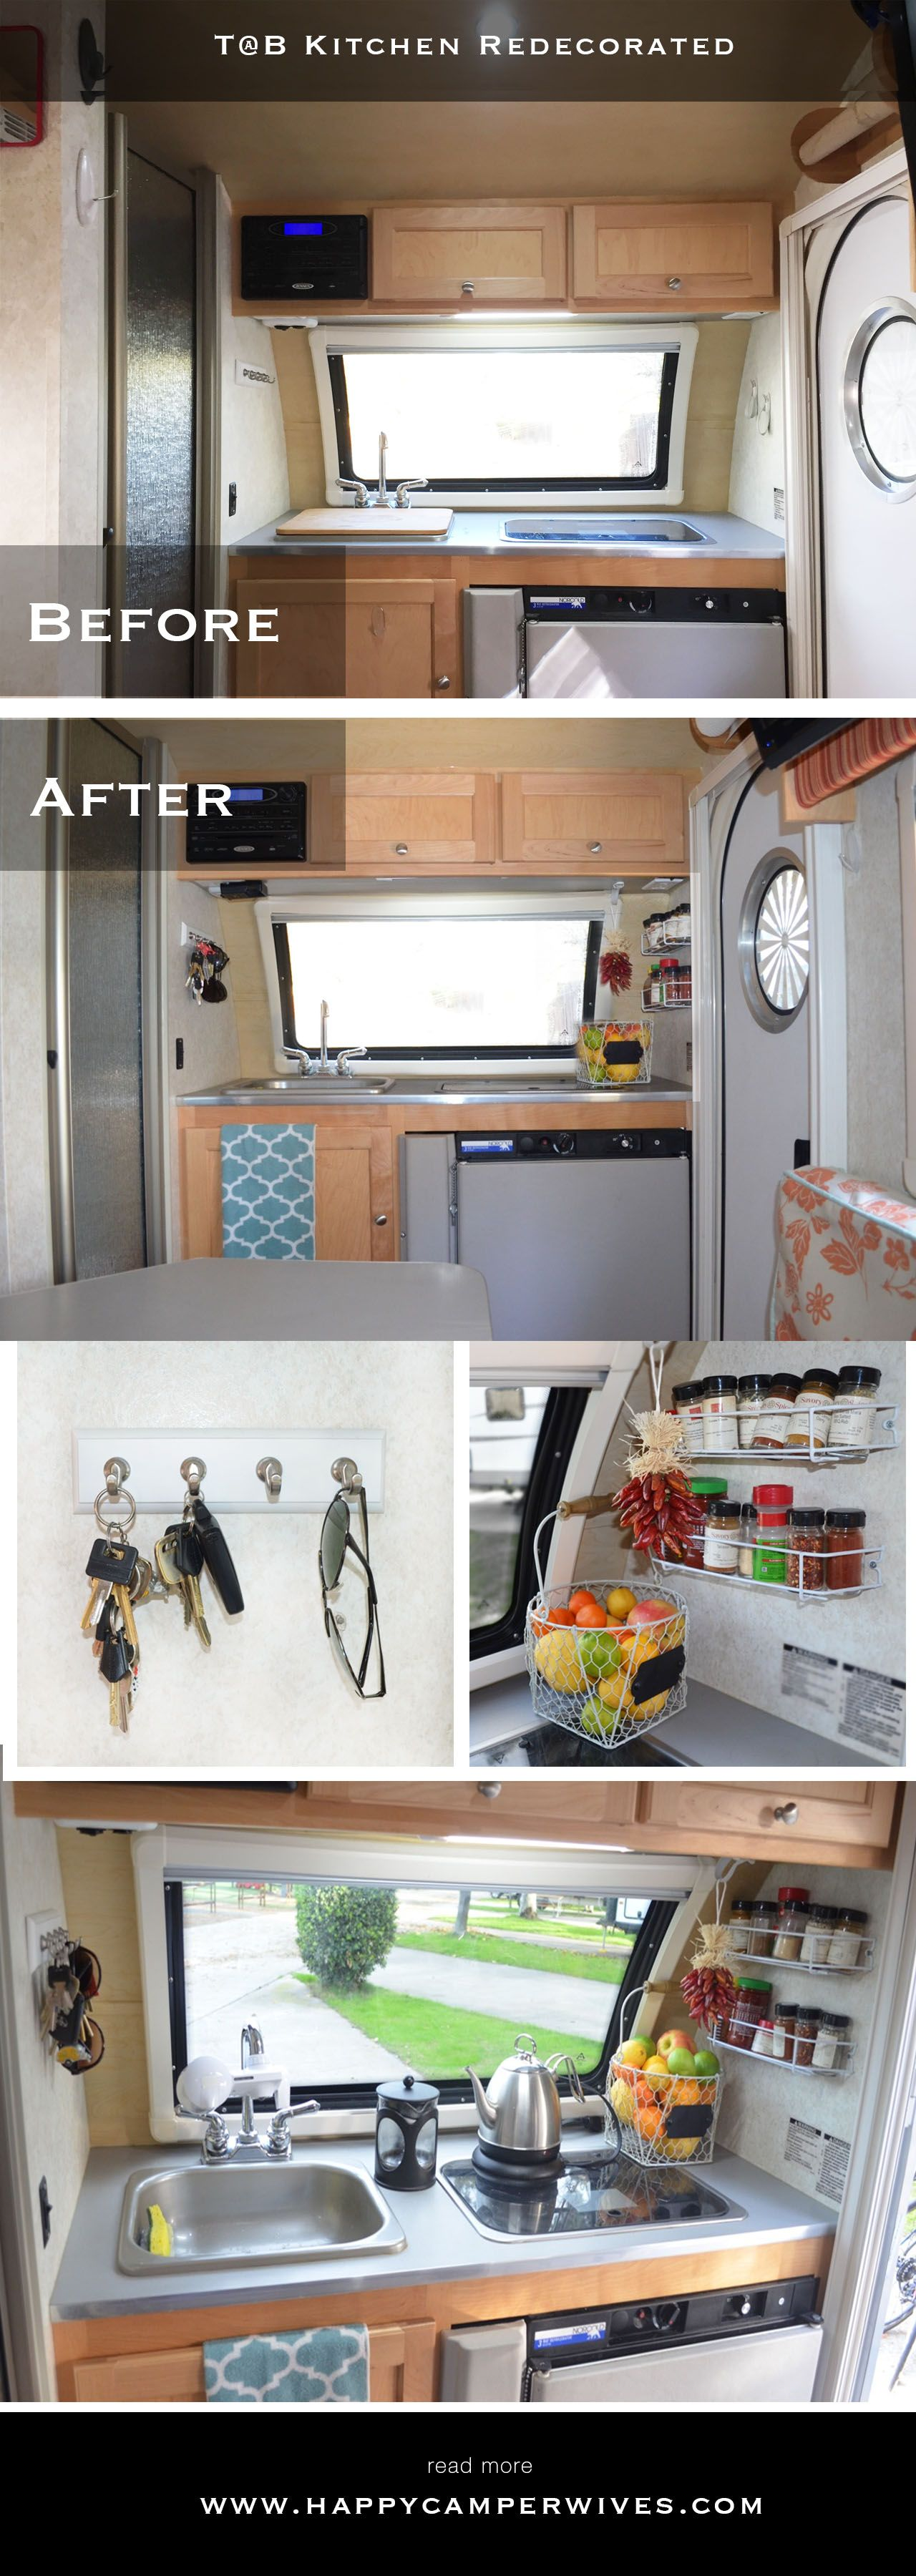 Redecorated And Refreshed Interior Of The Tab Teardrop Camper Trailer See Rest Remodel On Happycamperwives